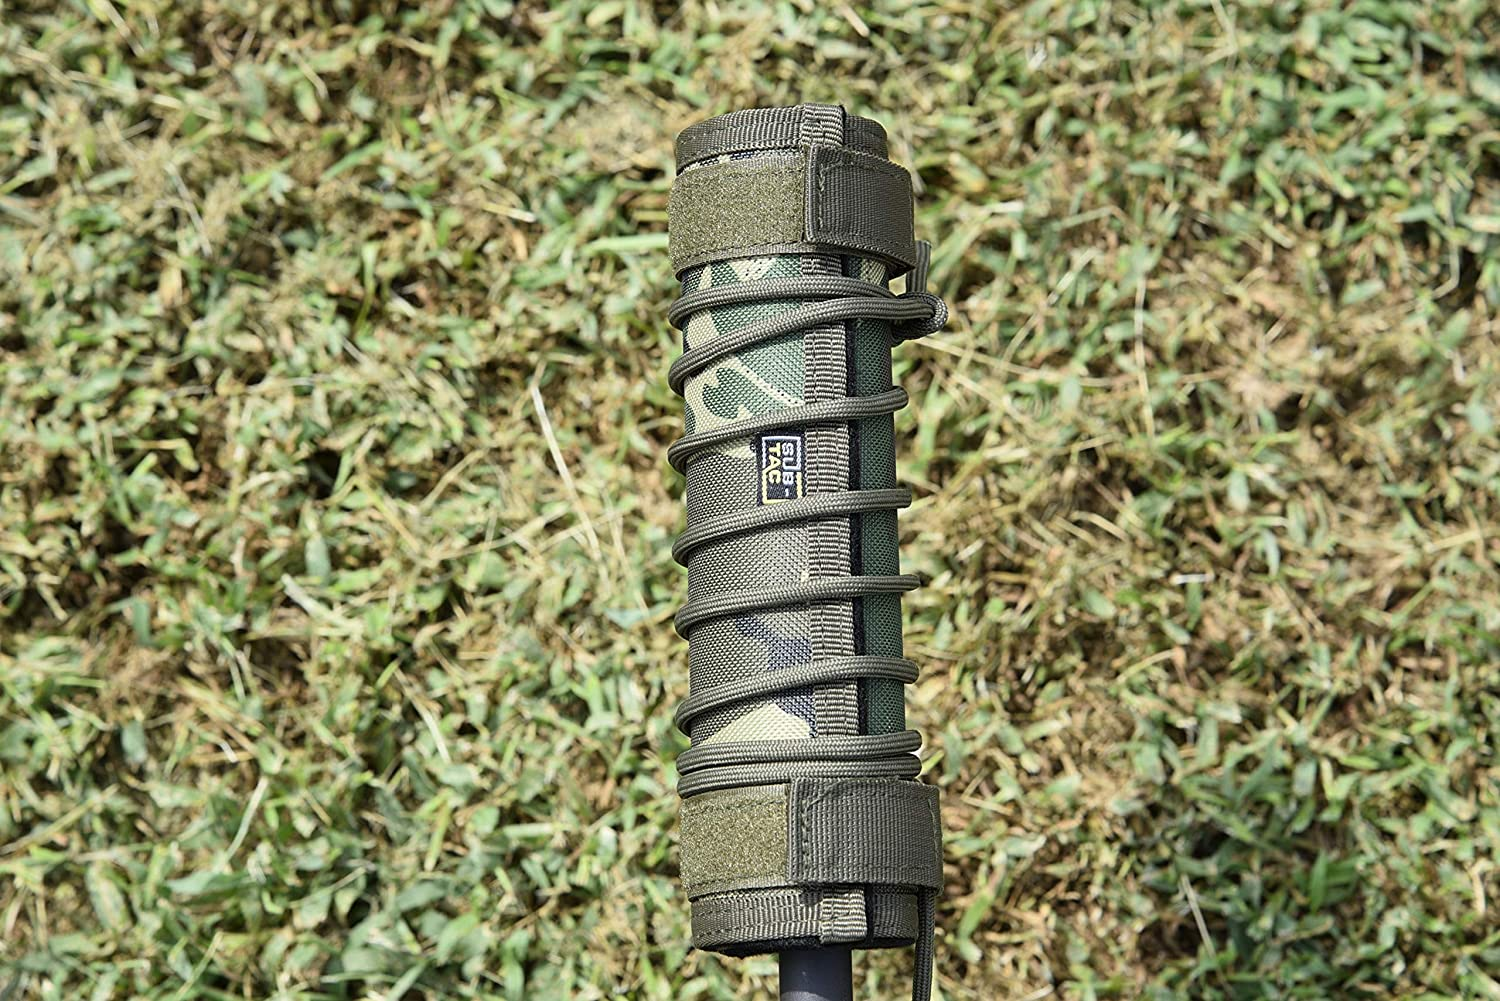 Subtac Full Auto Year-end annual account High Temp Alpha Suppressor Silencer in Cover 4 years warranty 8